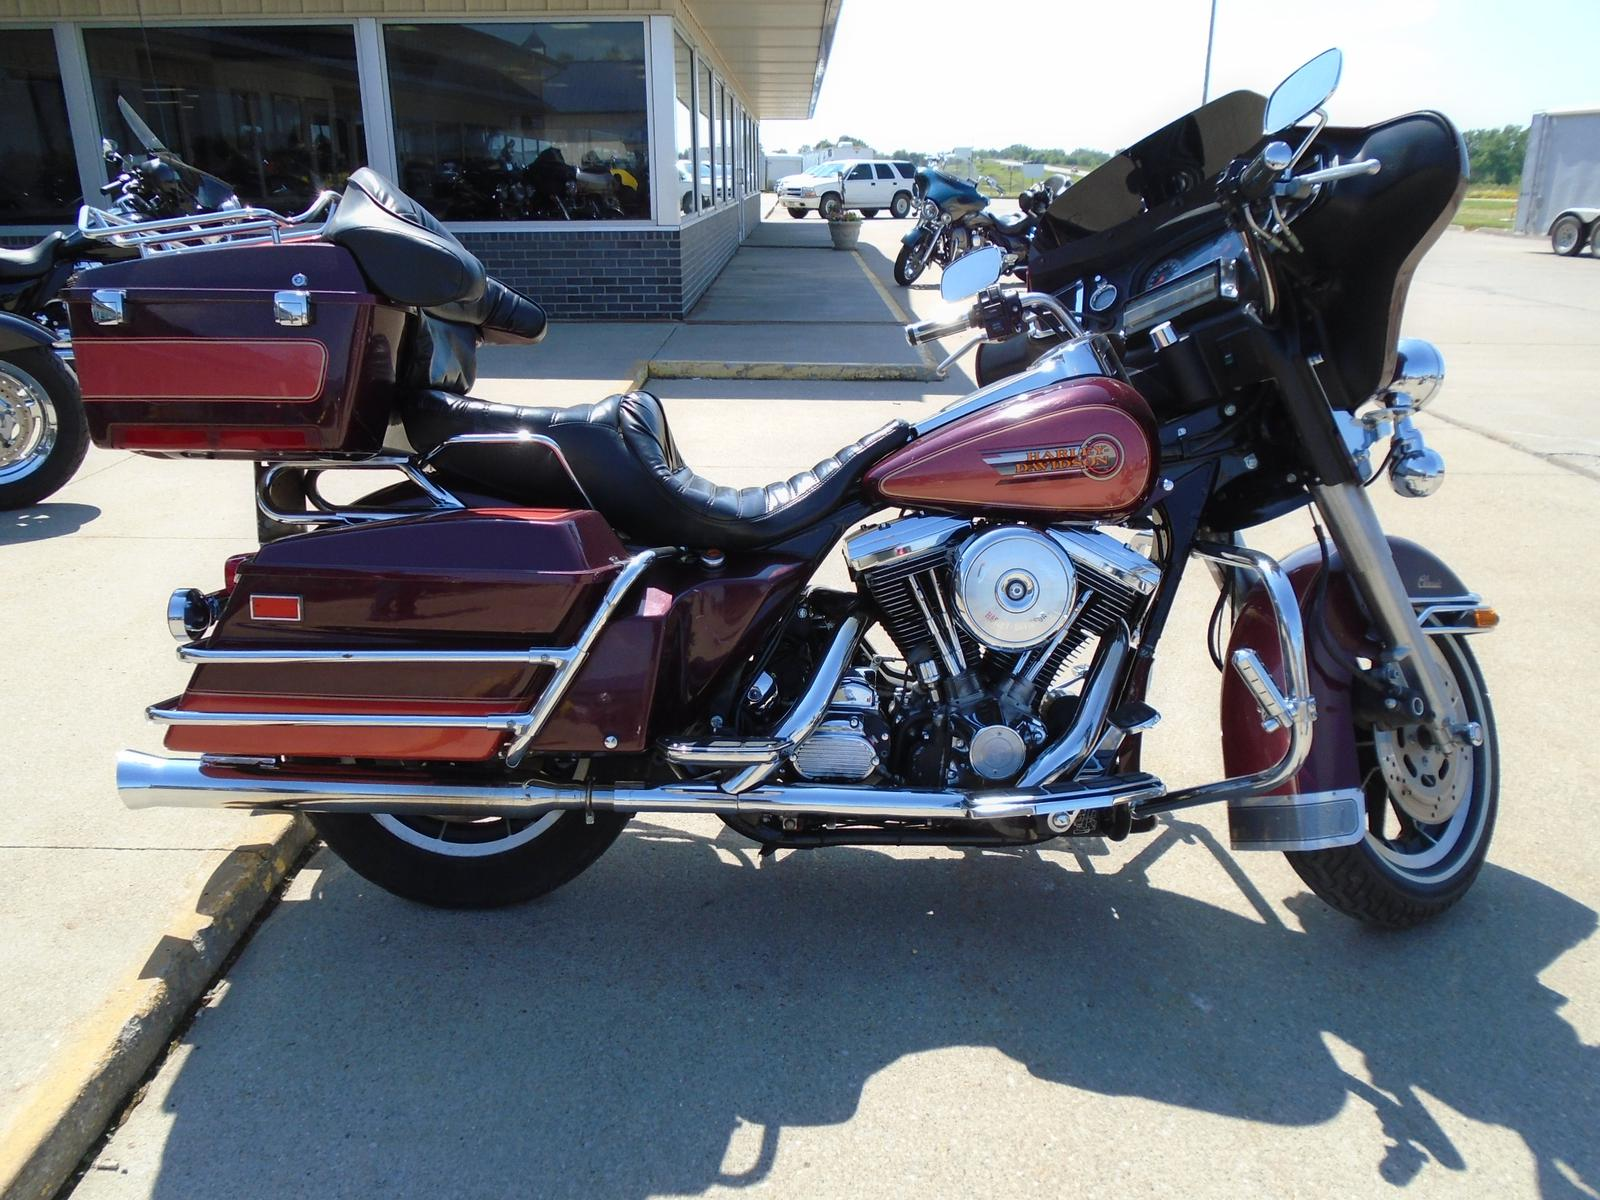 1992 Harley-Davidson FLHTC - ELECTRA GLID, motorcycle listing